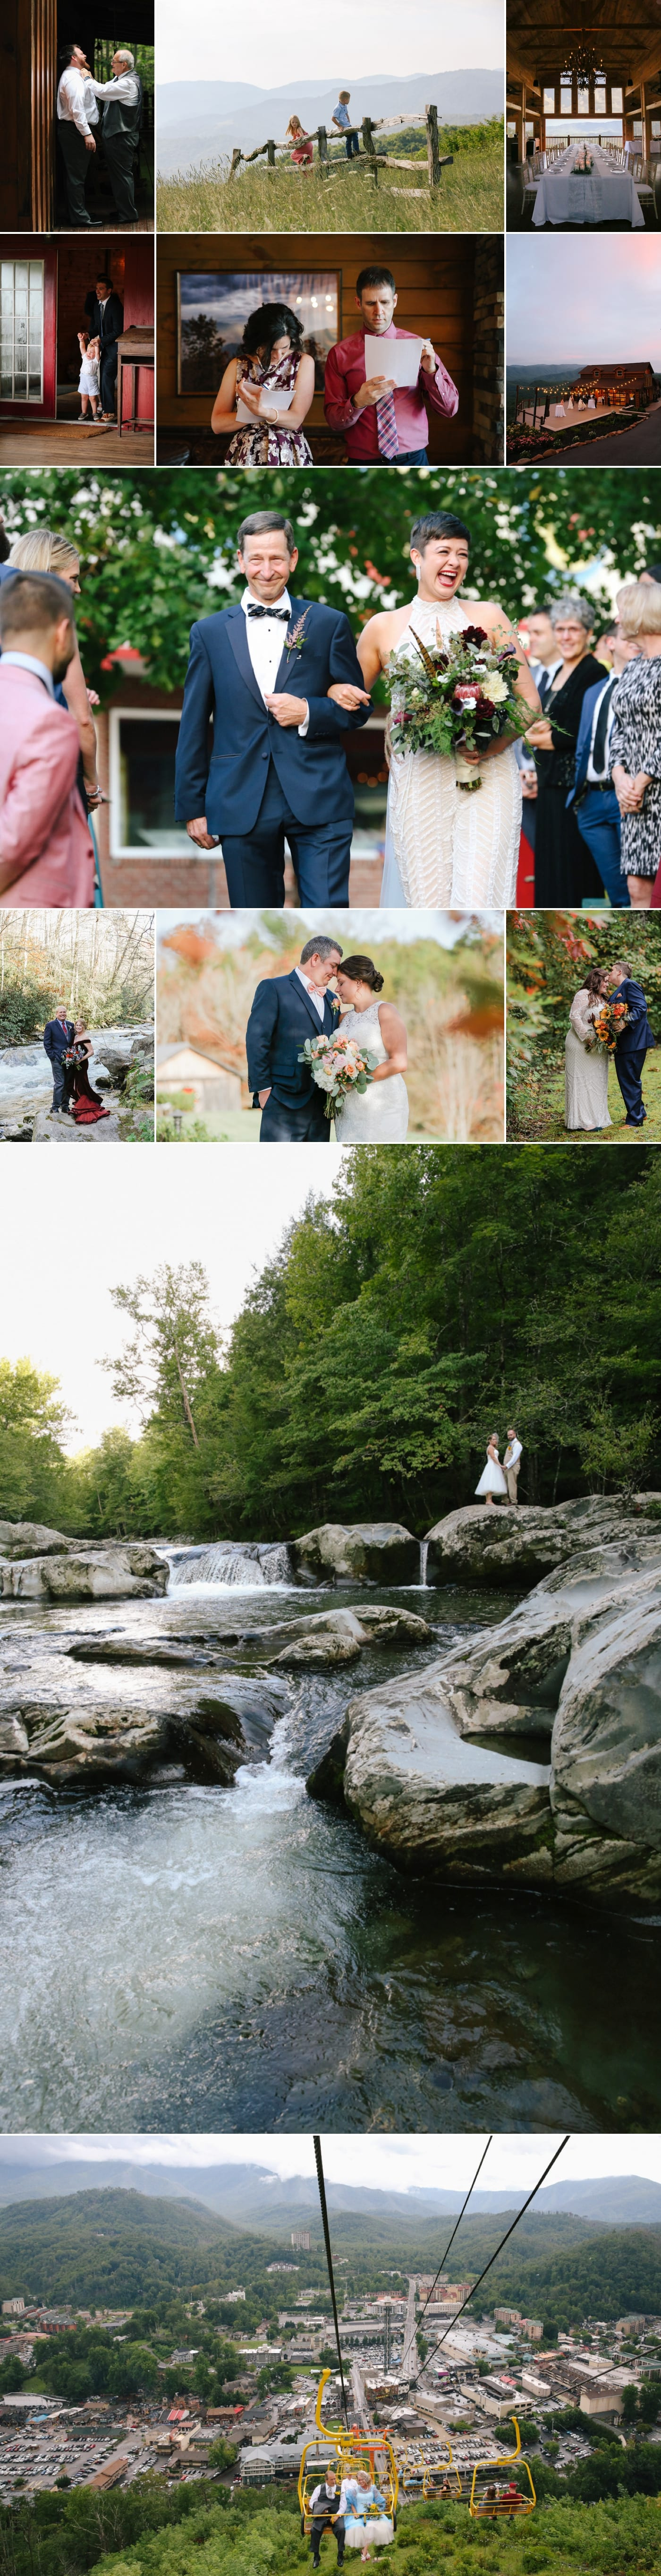 Wedding in the Smoky Mountains